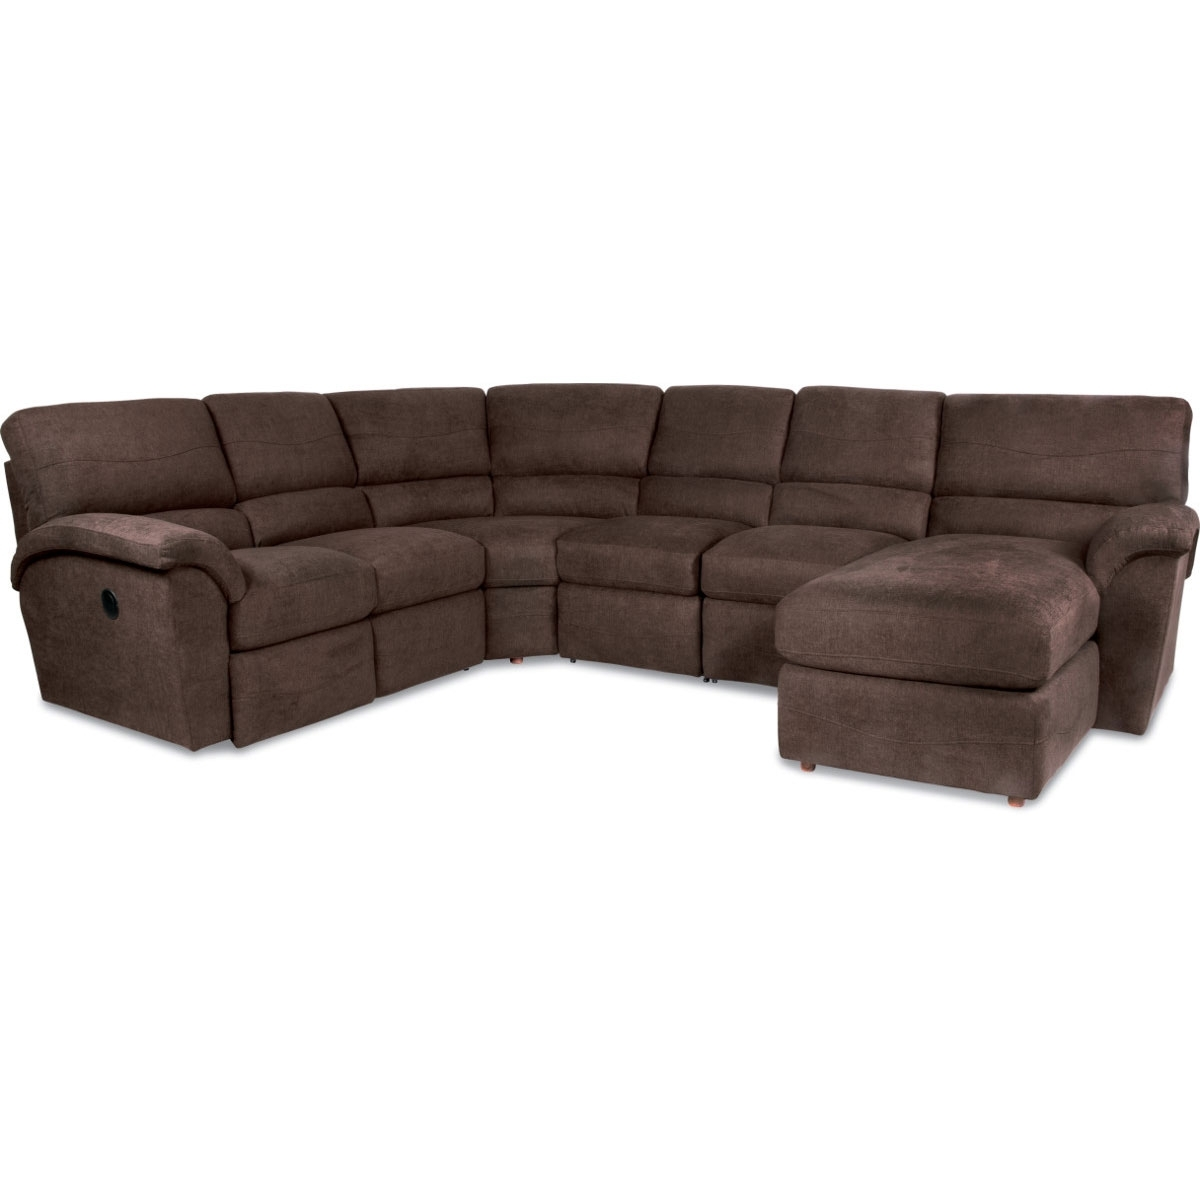 La Z Boy With Regard To Popular La Z Boy Sectional Sofas (View 8 of 20)